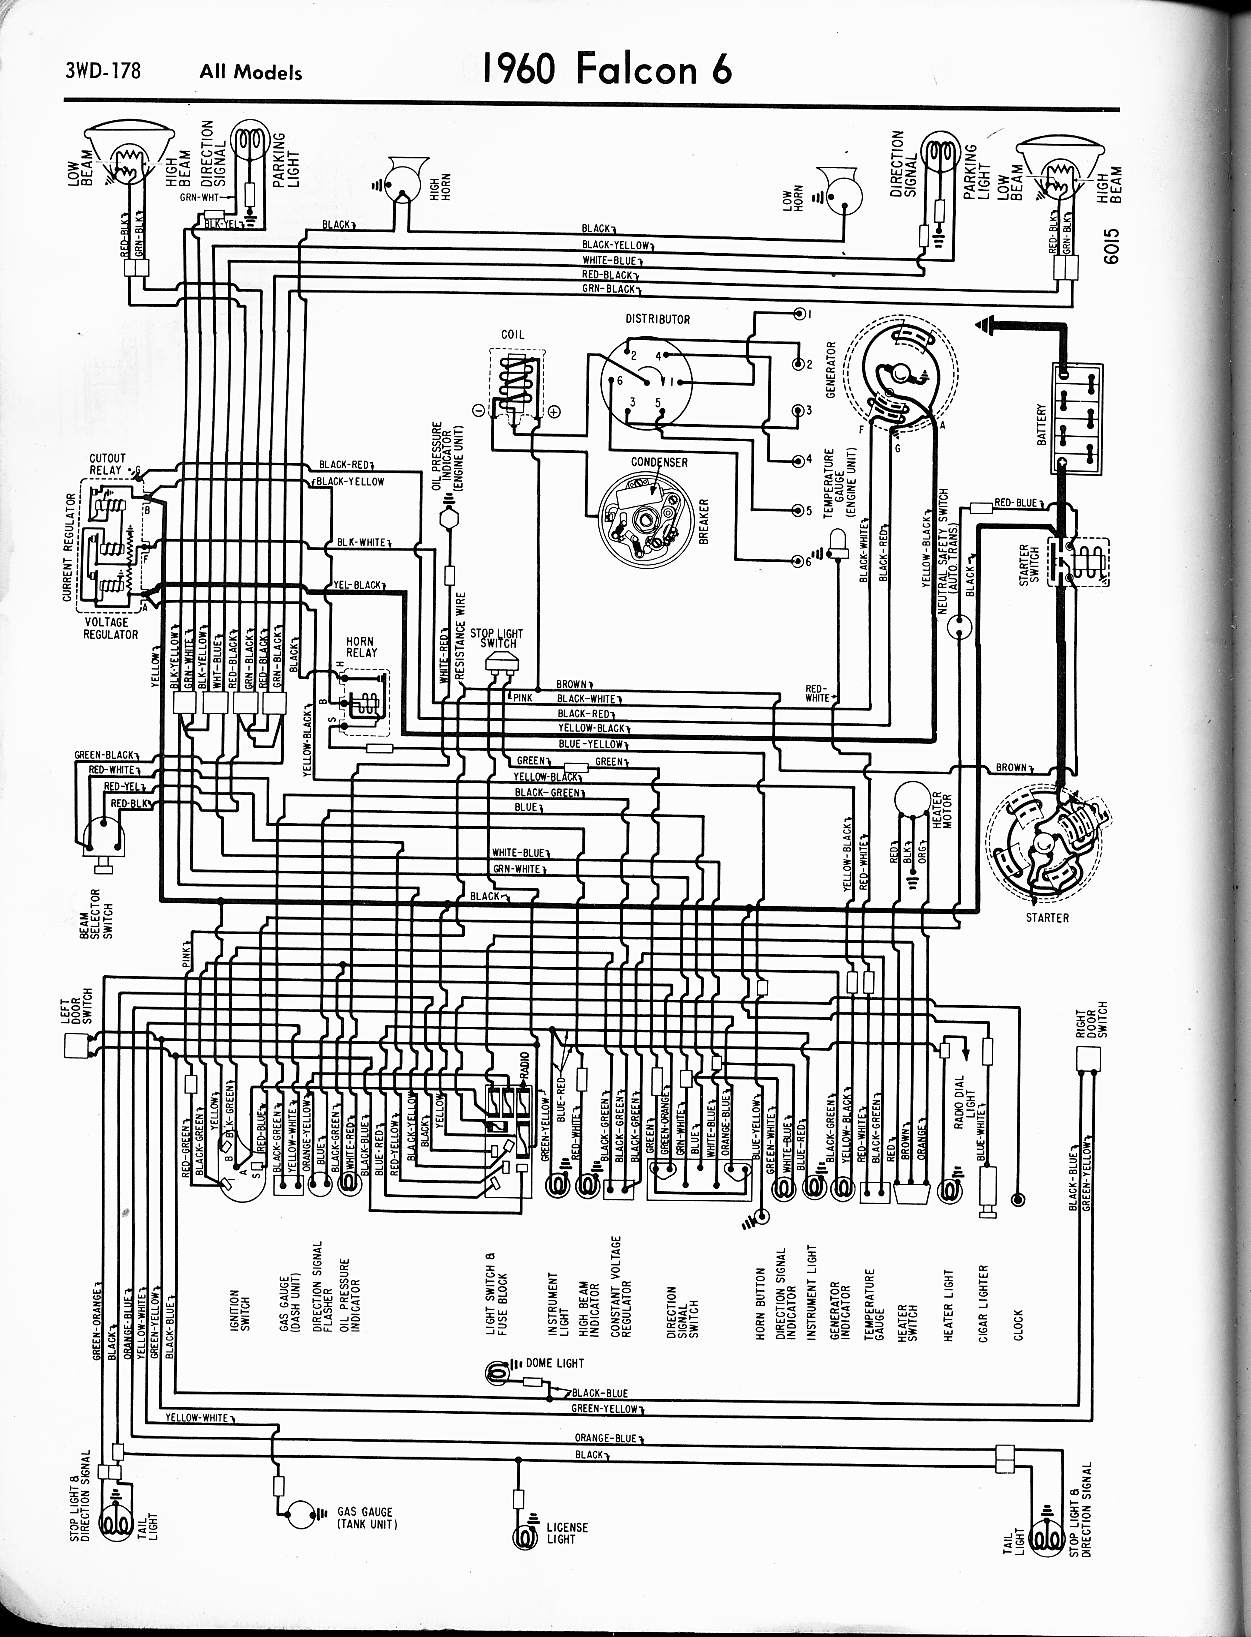 57 65 ford wiring diagrams 1957 thunderbird steering column wiring diagram 1957 thunderbird power window wiring diagram #18